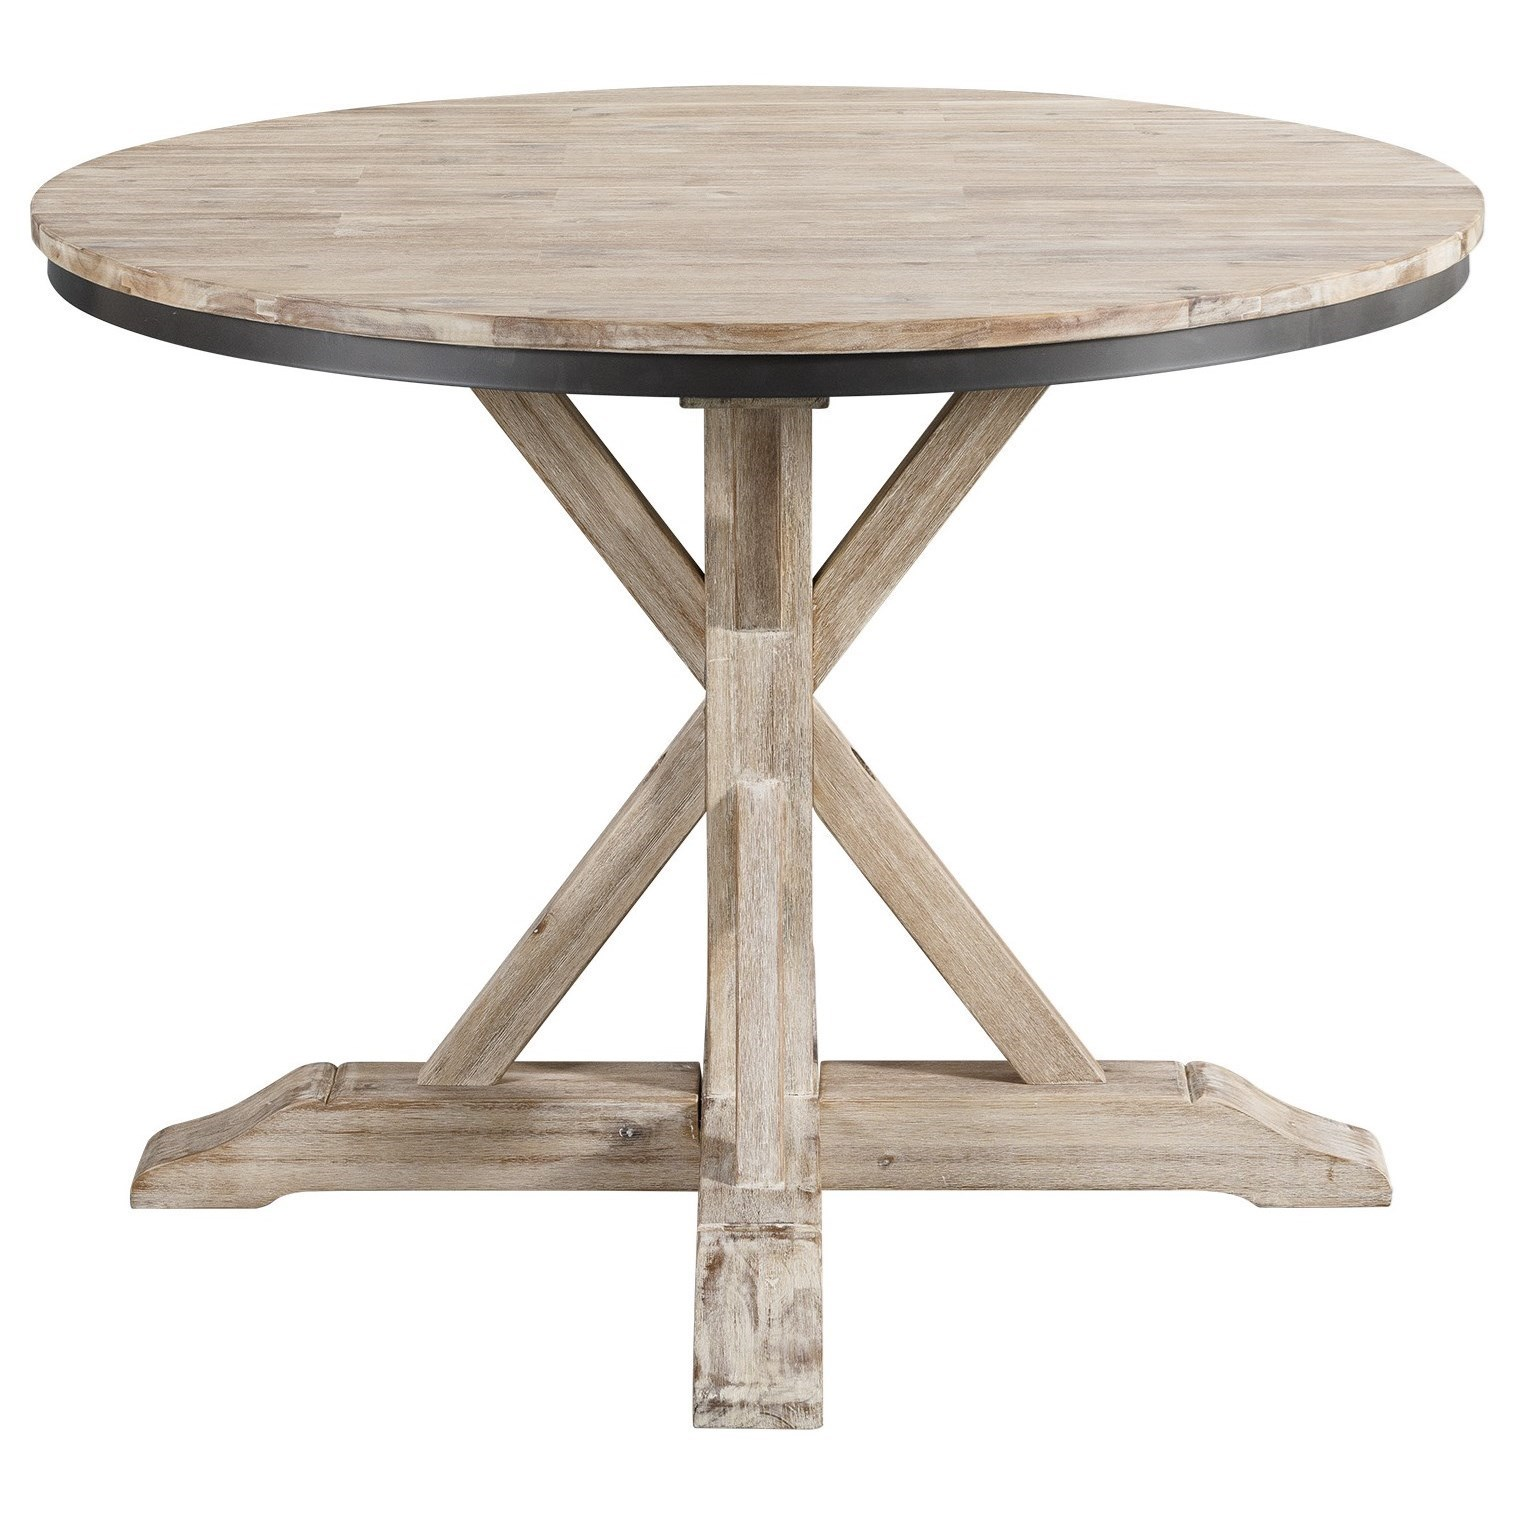 Elements Callista Rustic Round Standard Height Dining Table Royal Furniture Kitchen Tables